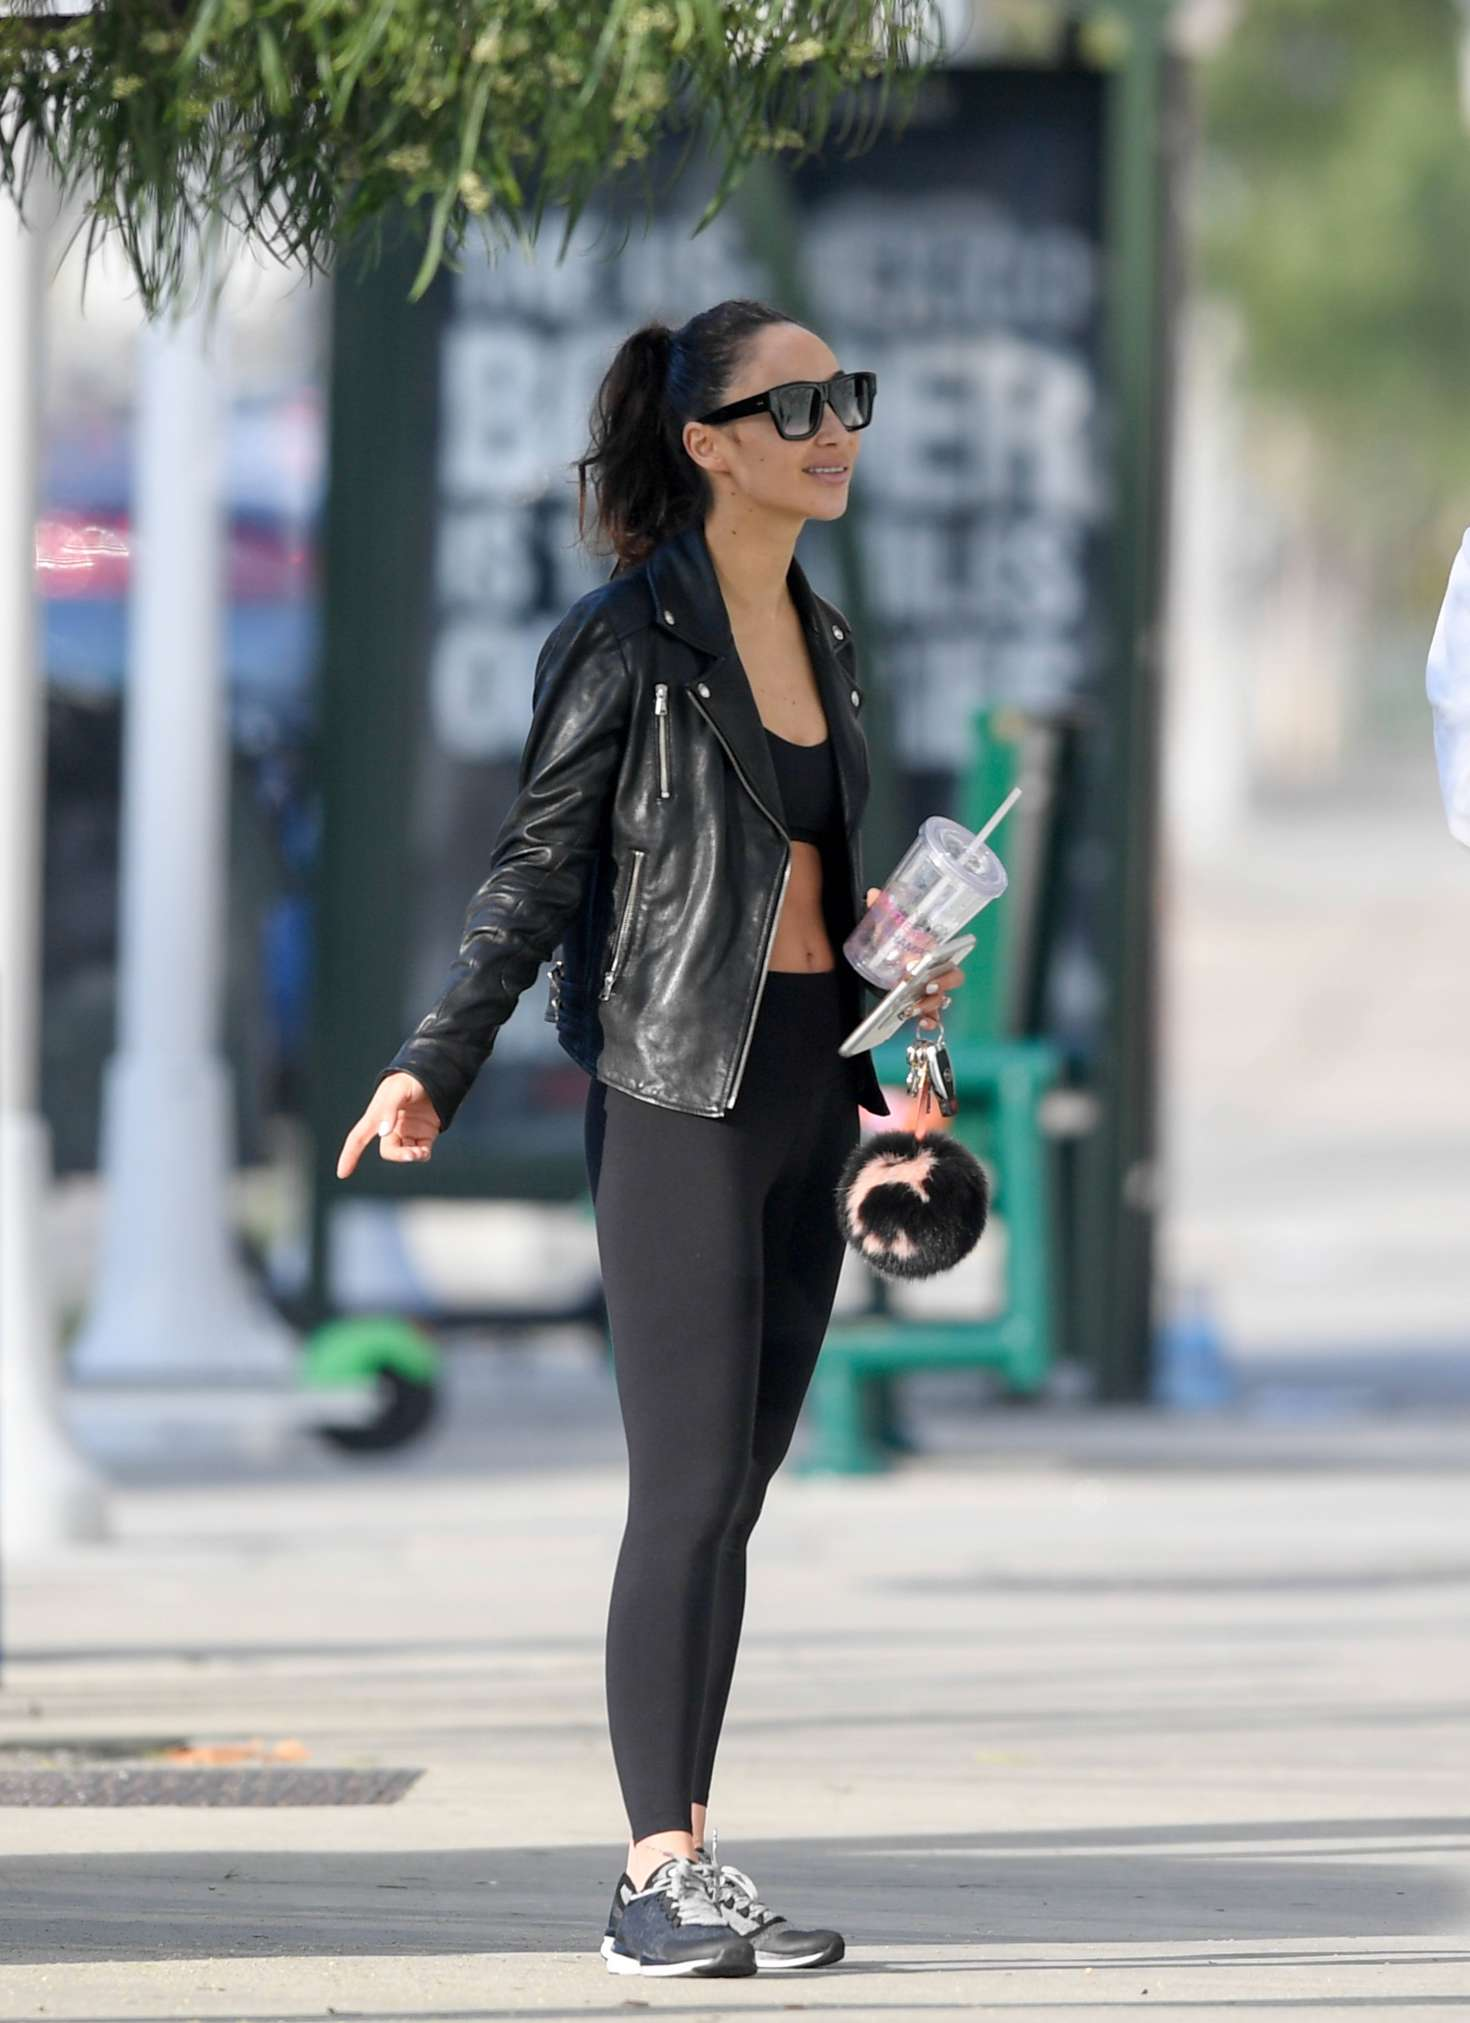 Cara Santana in Tights - Leaving the gym in LA